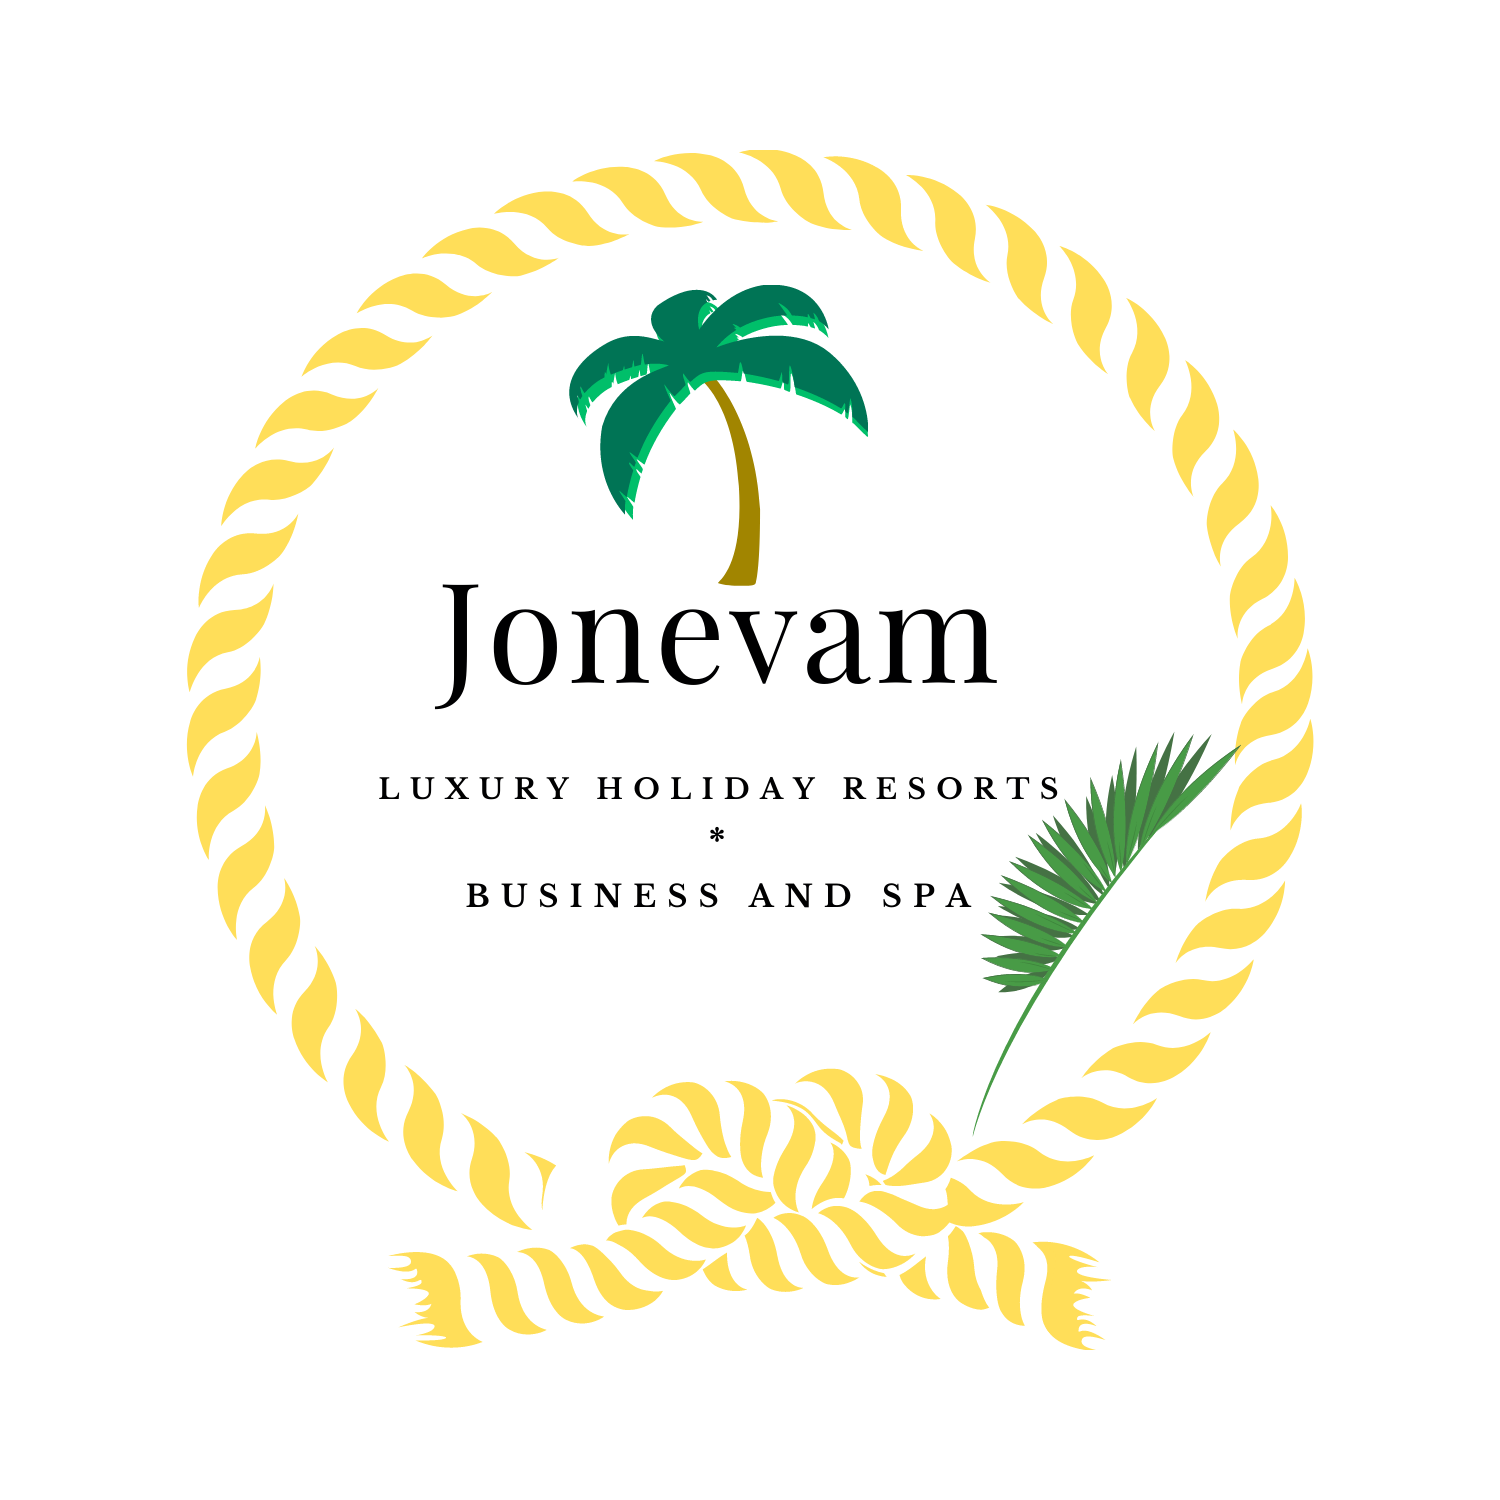 images/Jonevam-logo-websitekali.co.ke.png